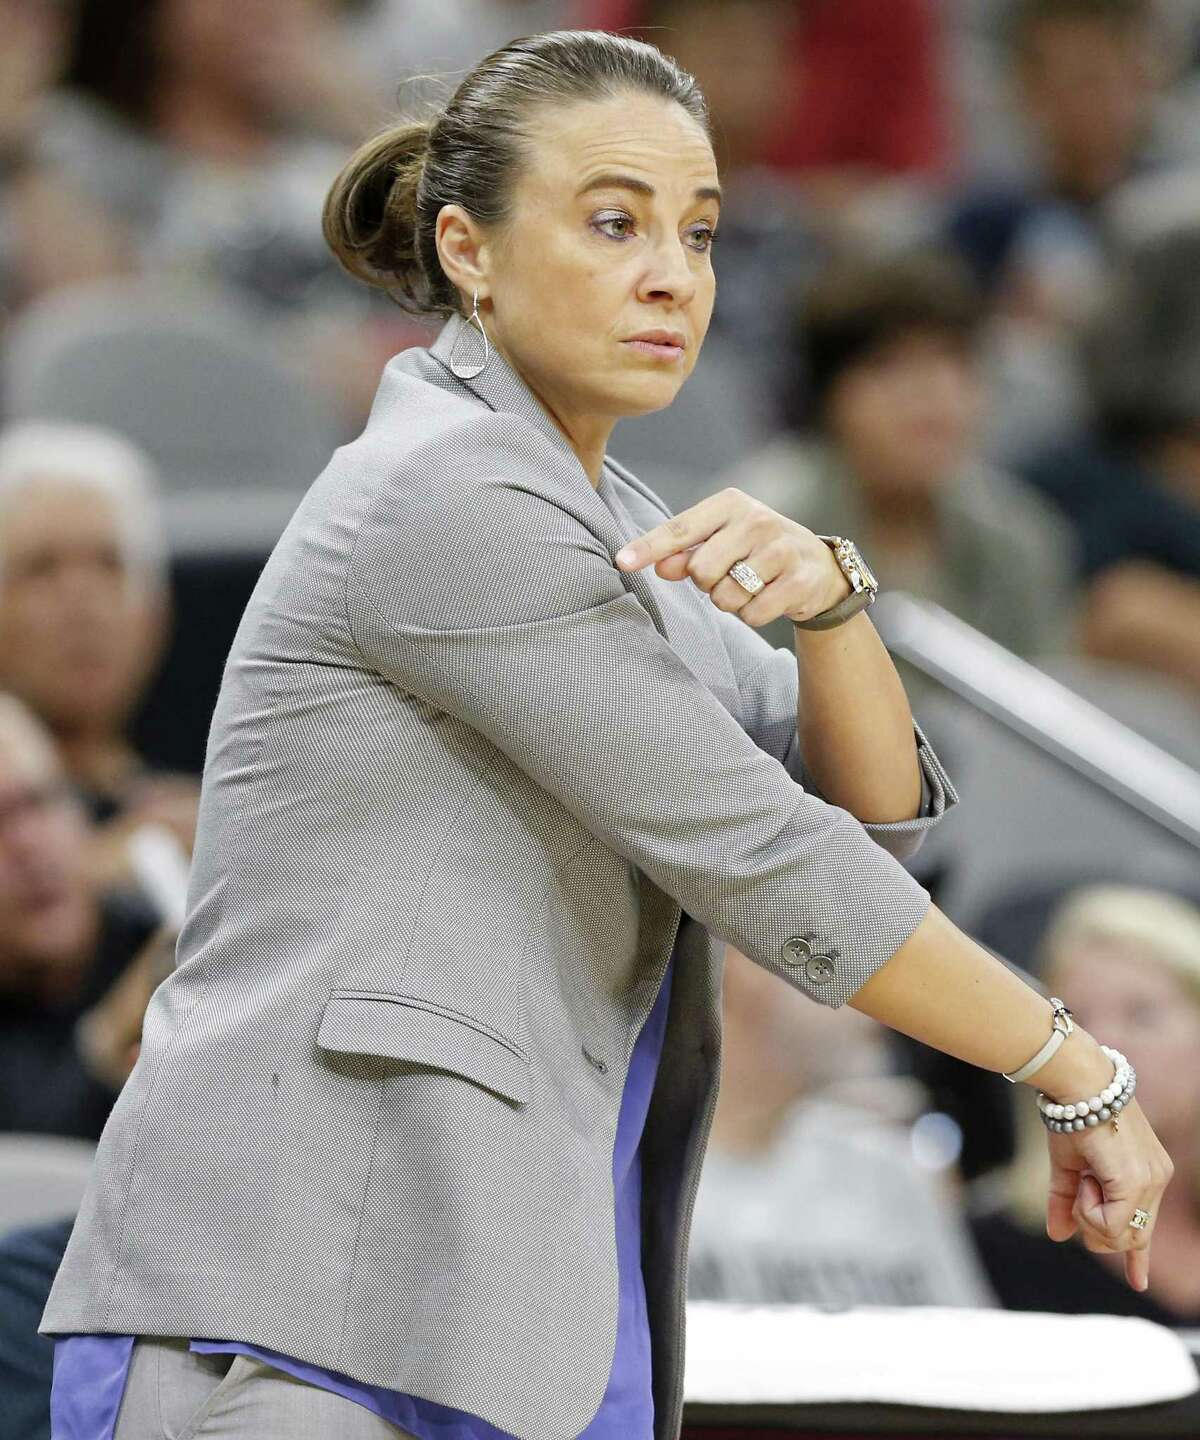 San Antonio Spurs assistant coach Becky Hammon calls a play during first half action of their preseason game against the Denver Nuggets Sunday Oct. 8, 2017 at the AT&T Center.